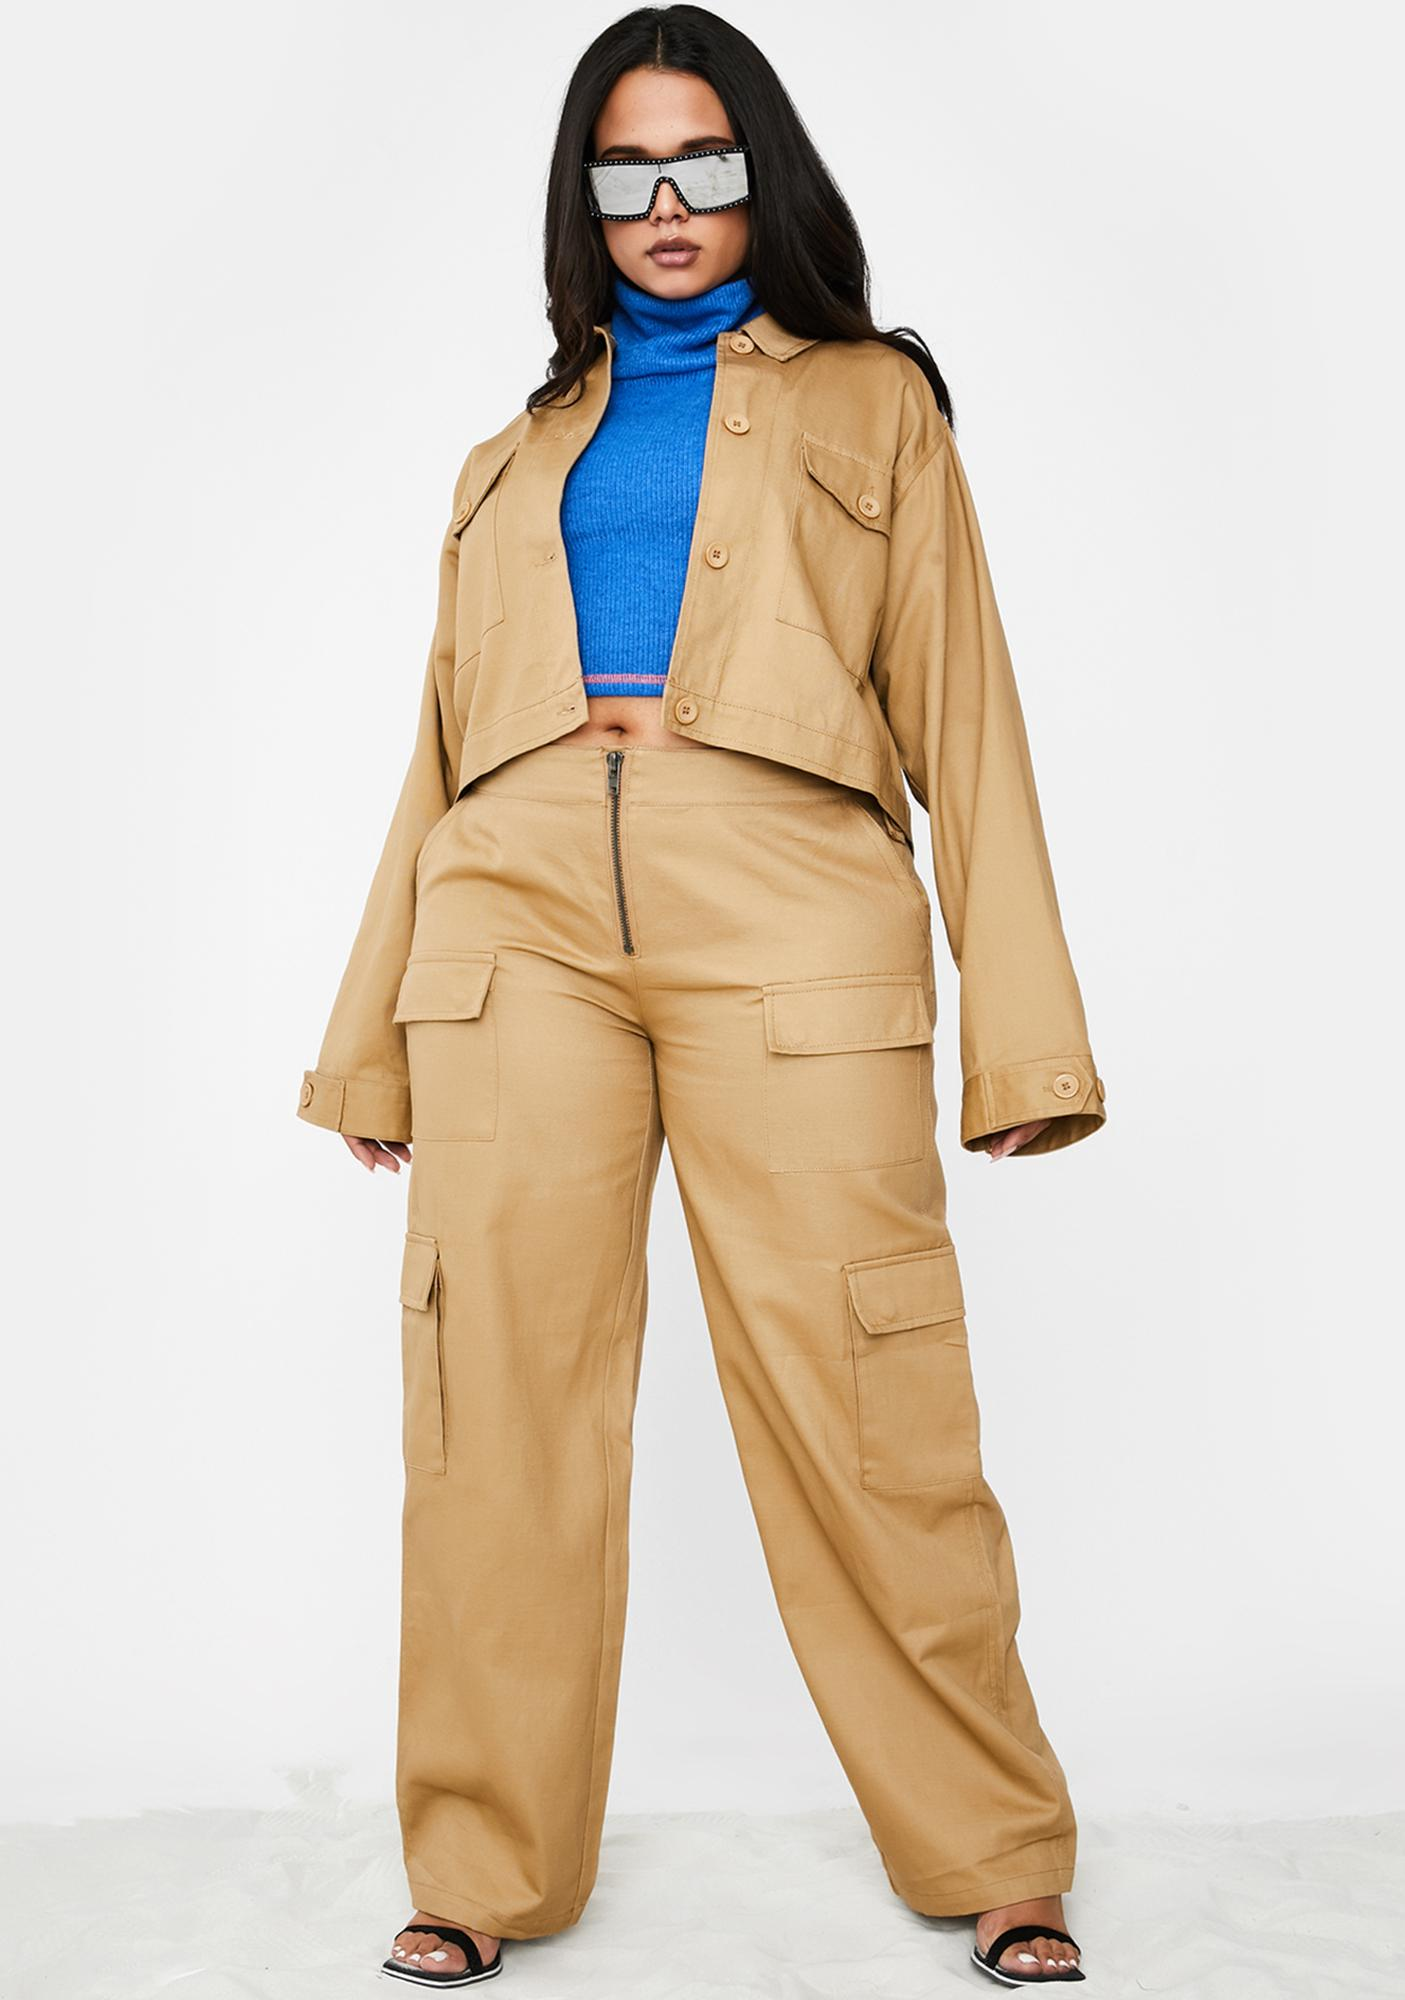 Poster Grl Booked Meetings On Rodeo Utility Jacket